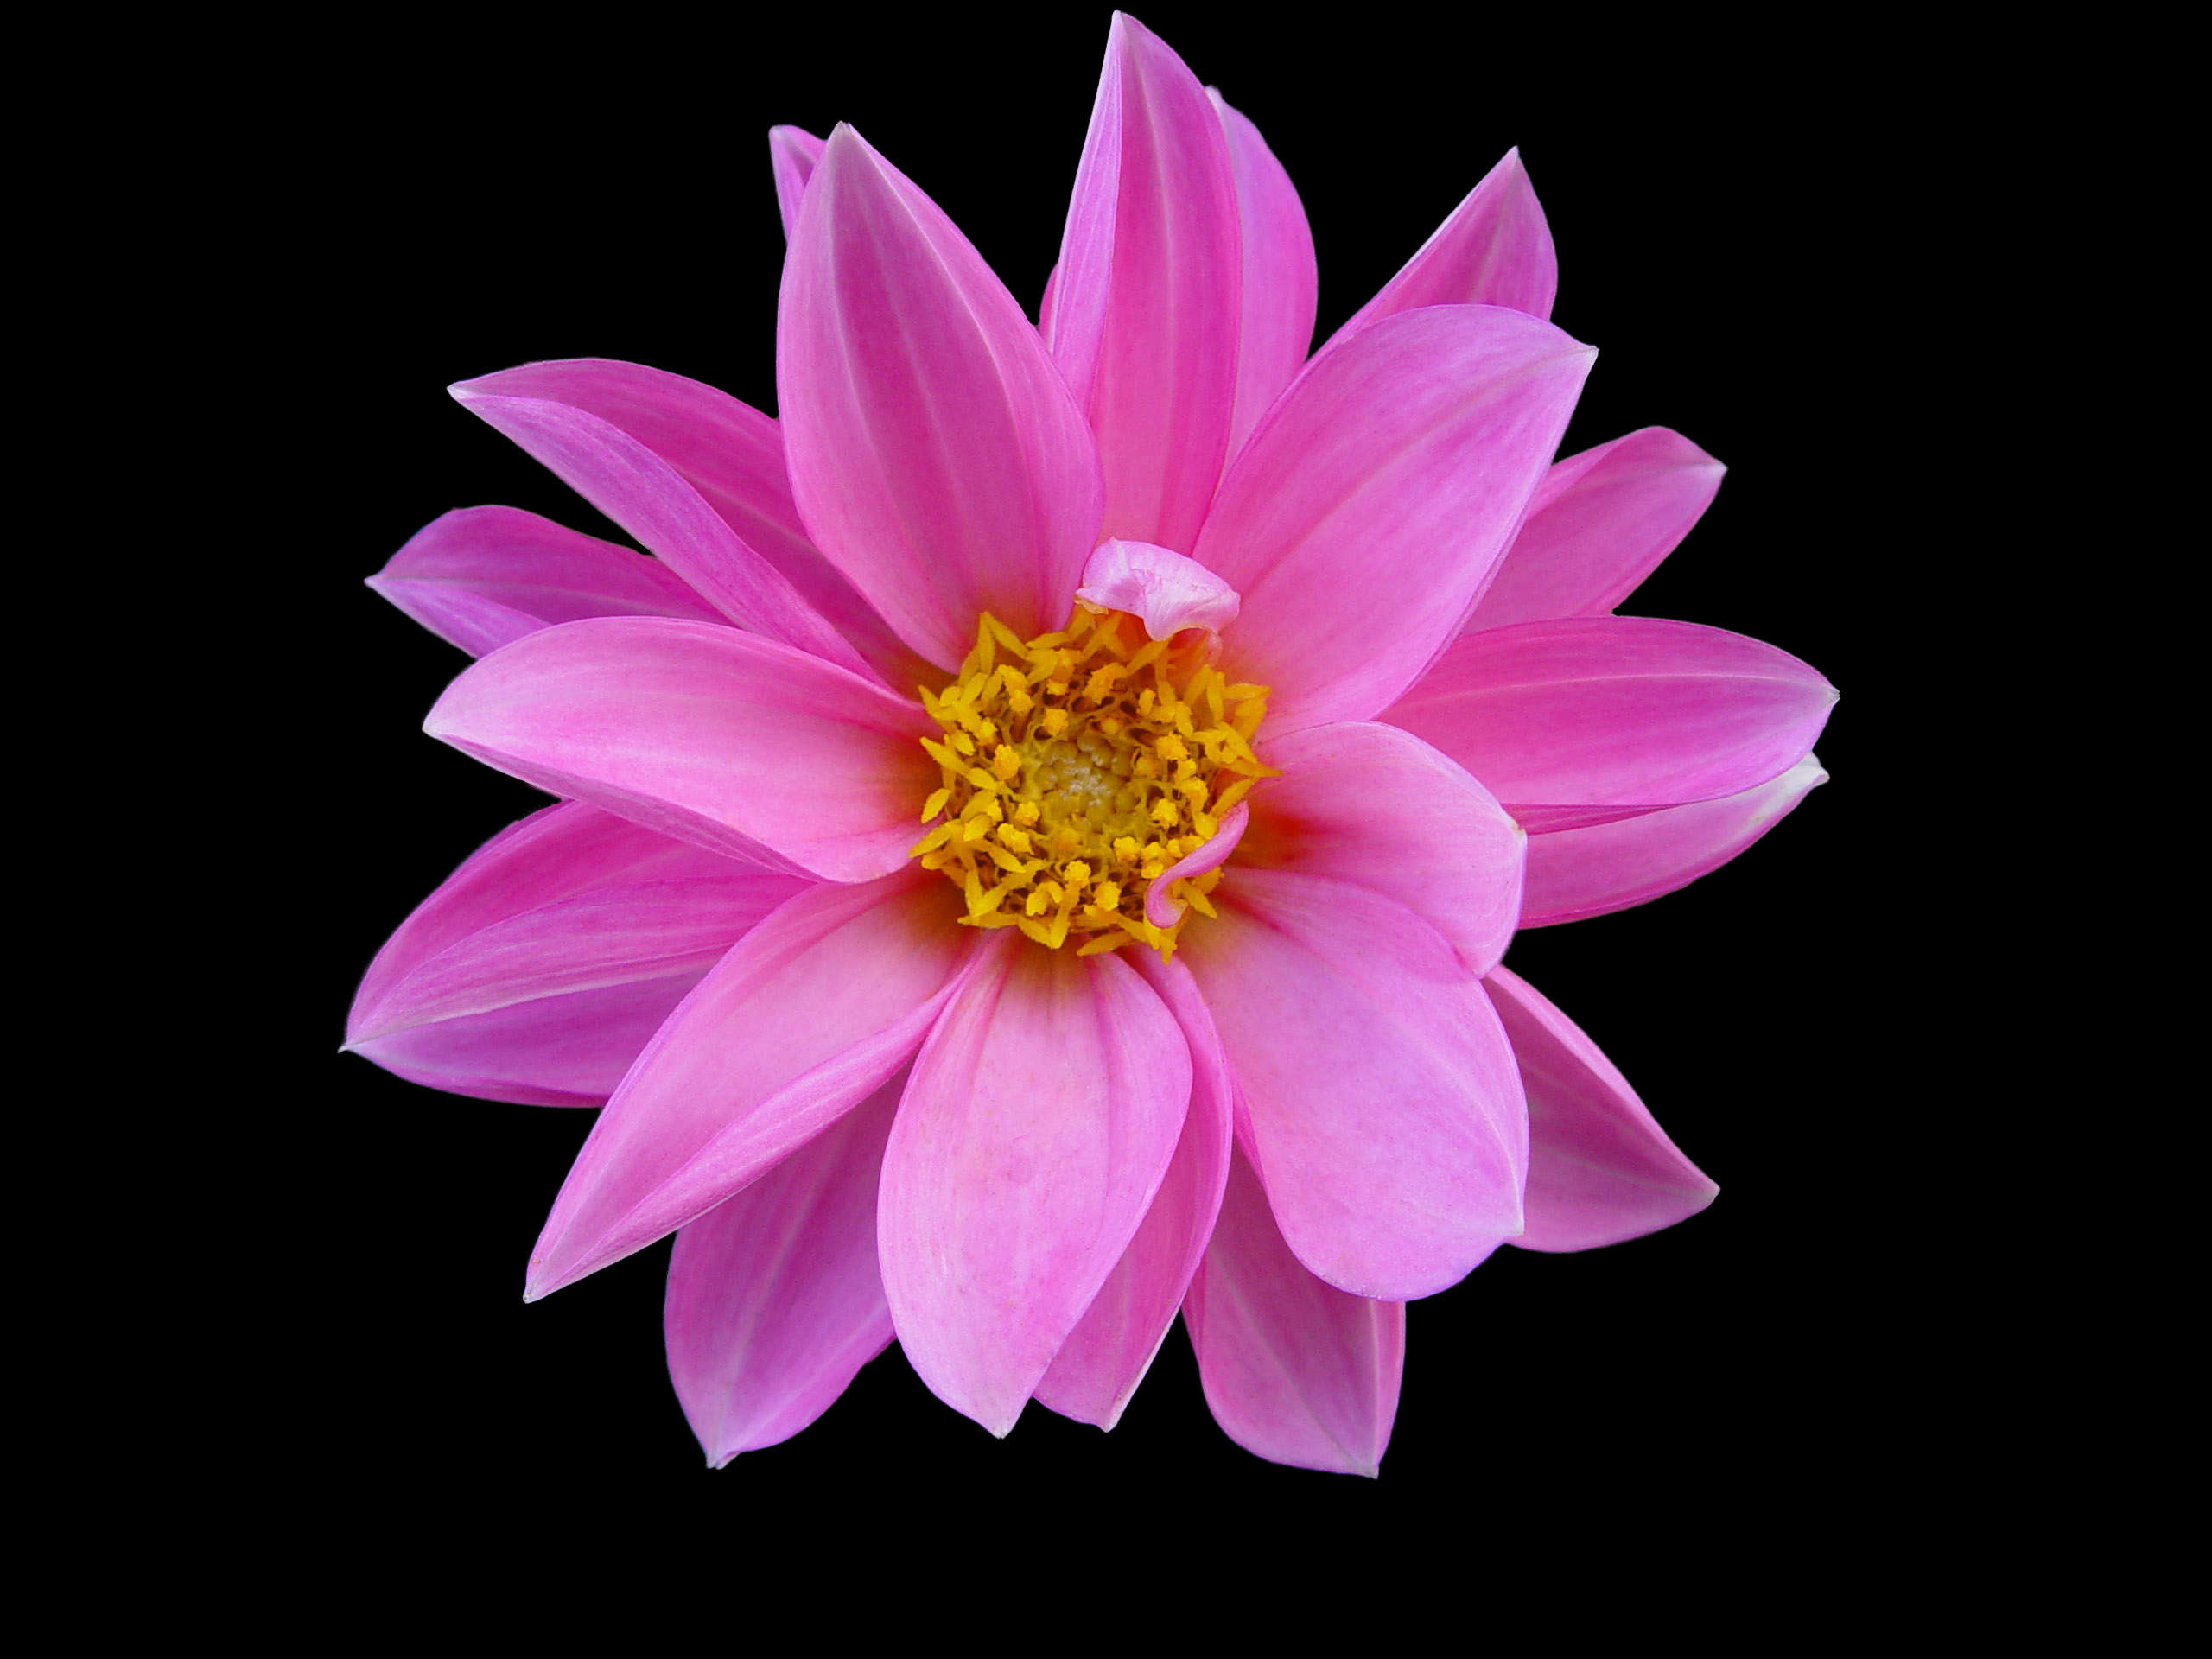 Pink flowers picture 9 cool wallpaper hdflowerwallpaper pink flowers picture free wallpaper mightylinksfo